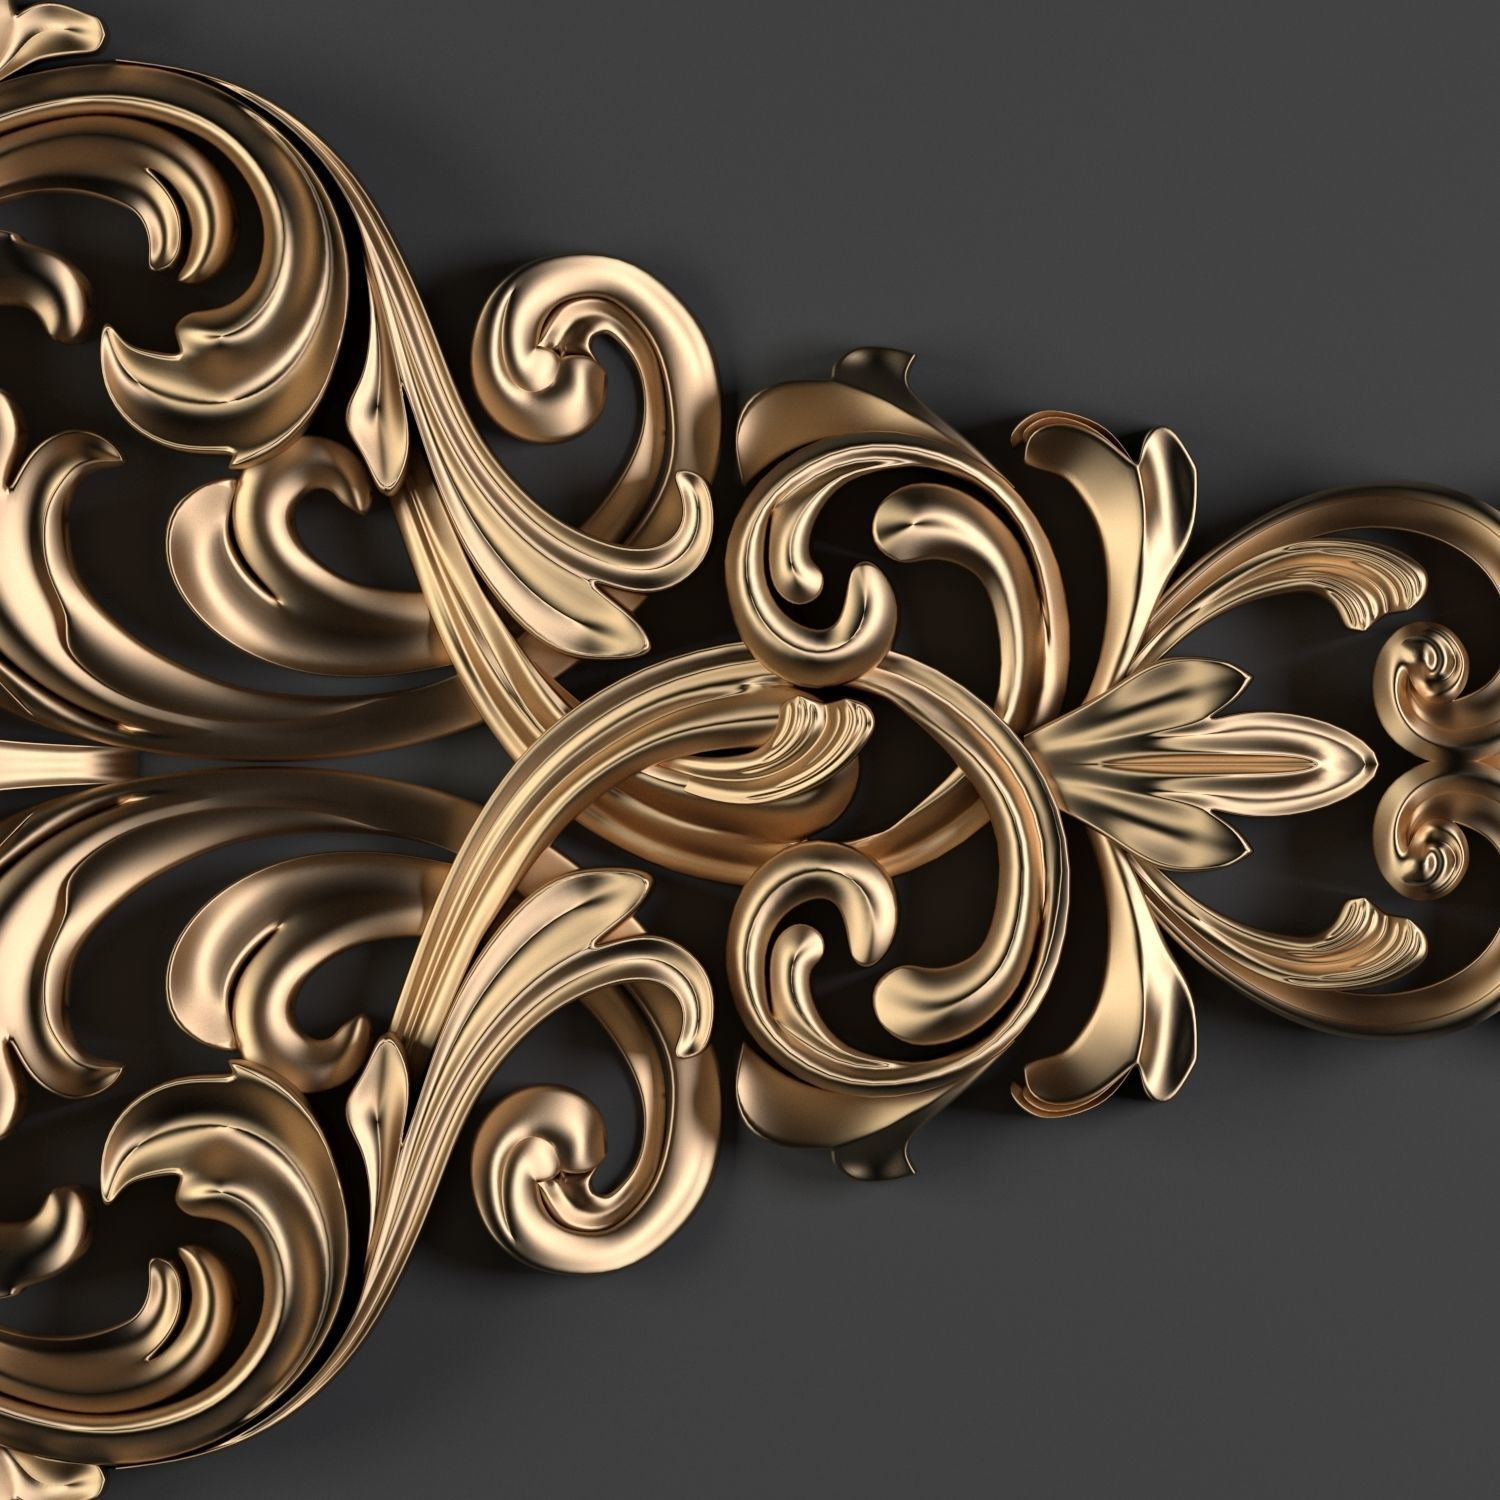 Decorative Floral Ornament-01